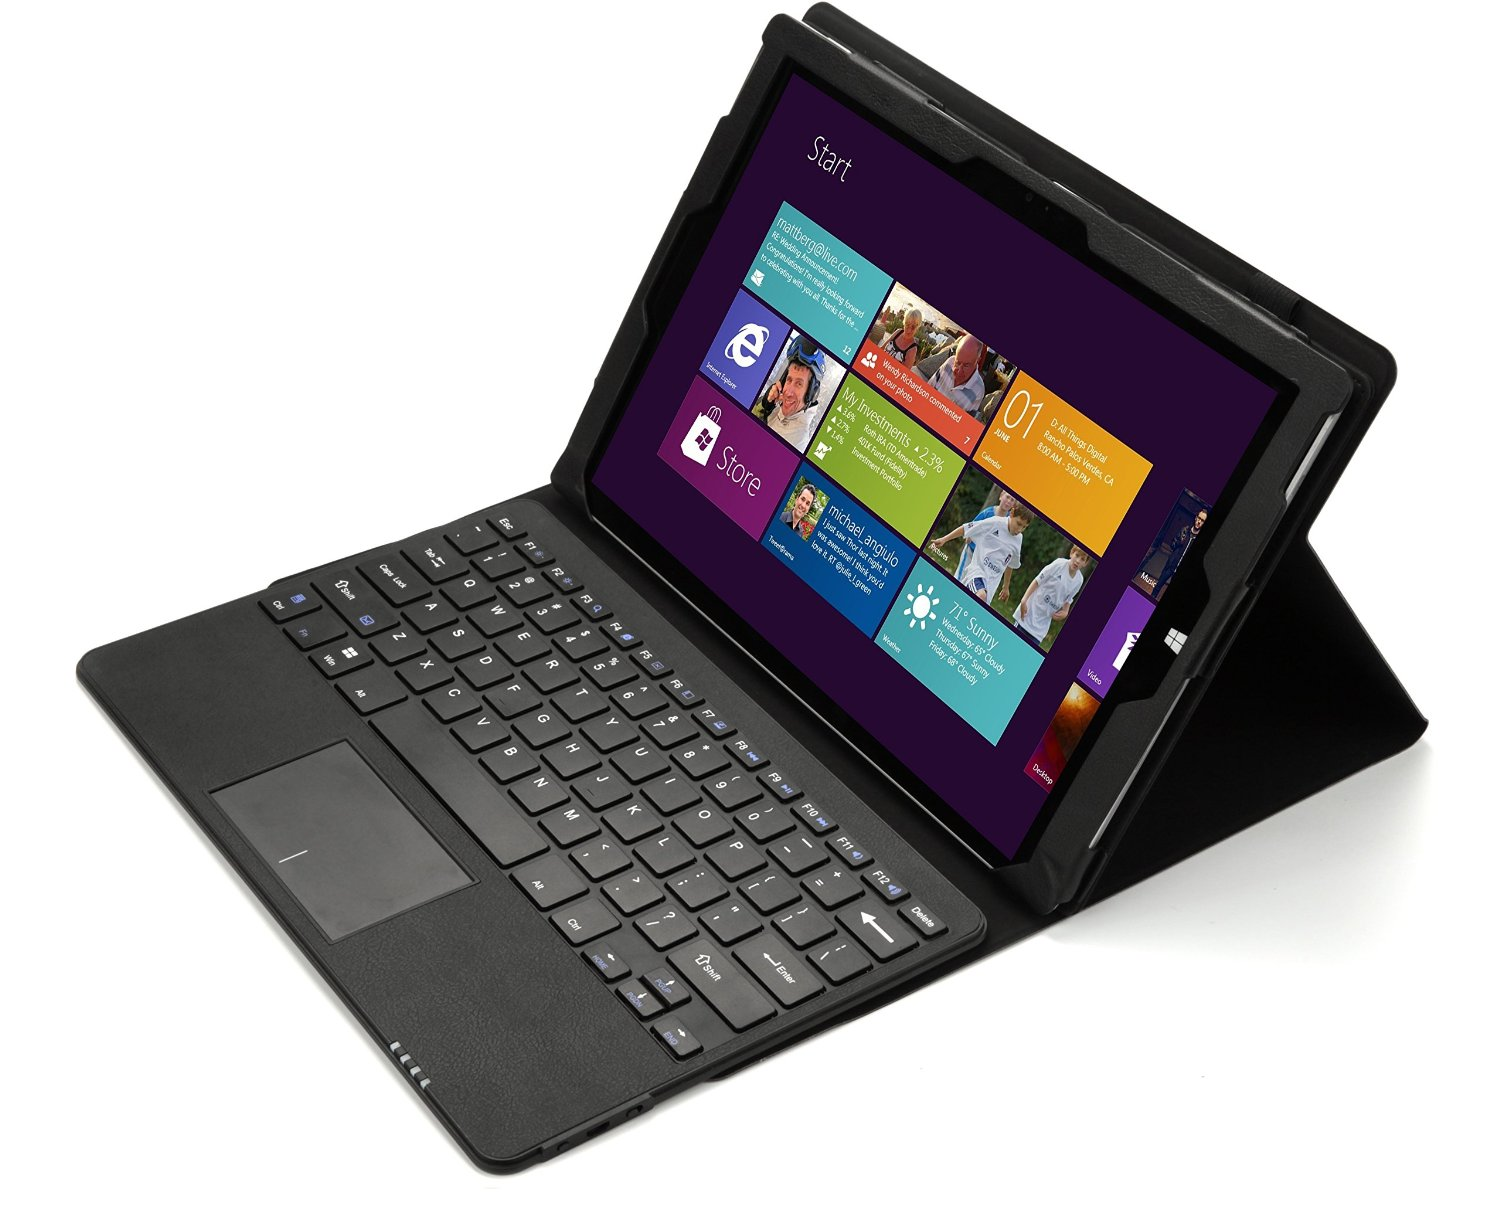 surface pro 4 cases, surface pro 4 accessories, surface pro 4 bags, surface cases, microsoft surface pro 4